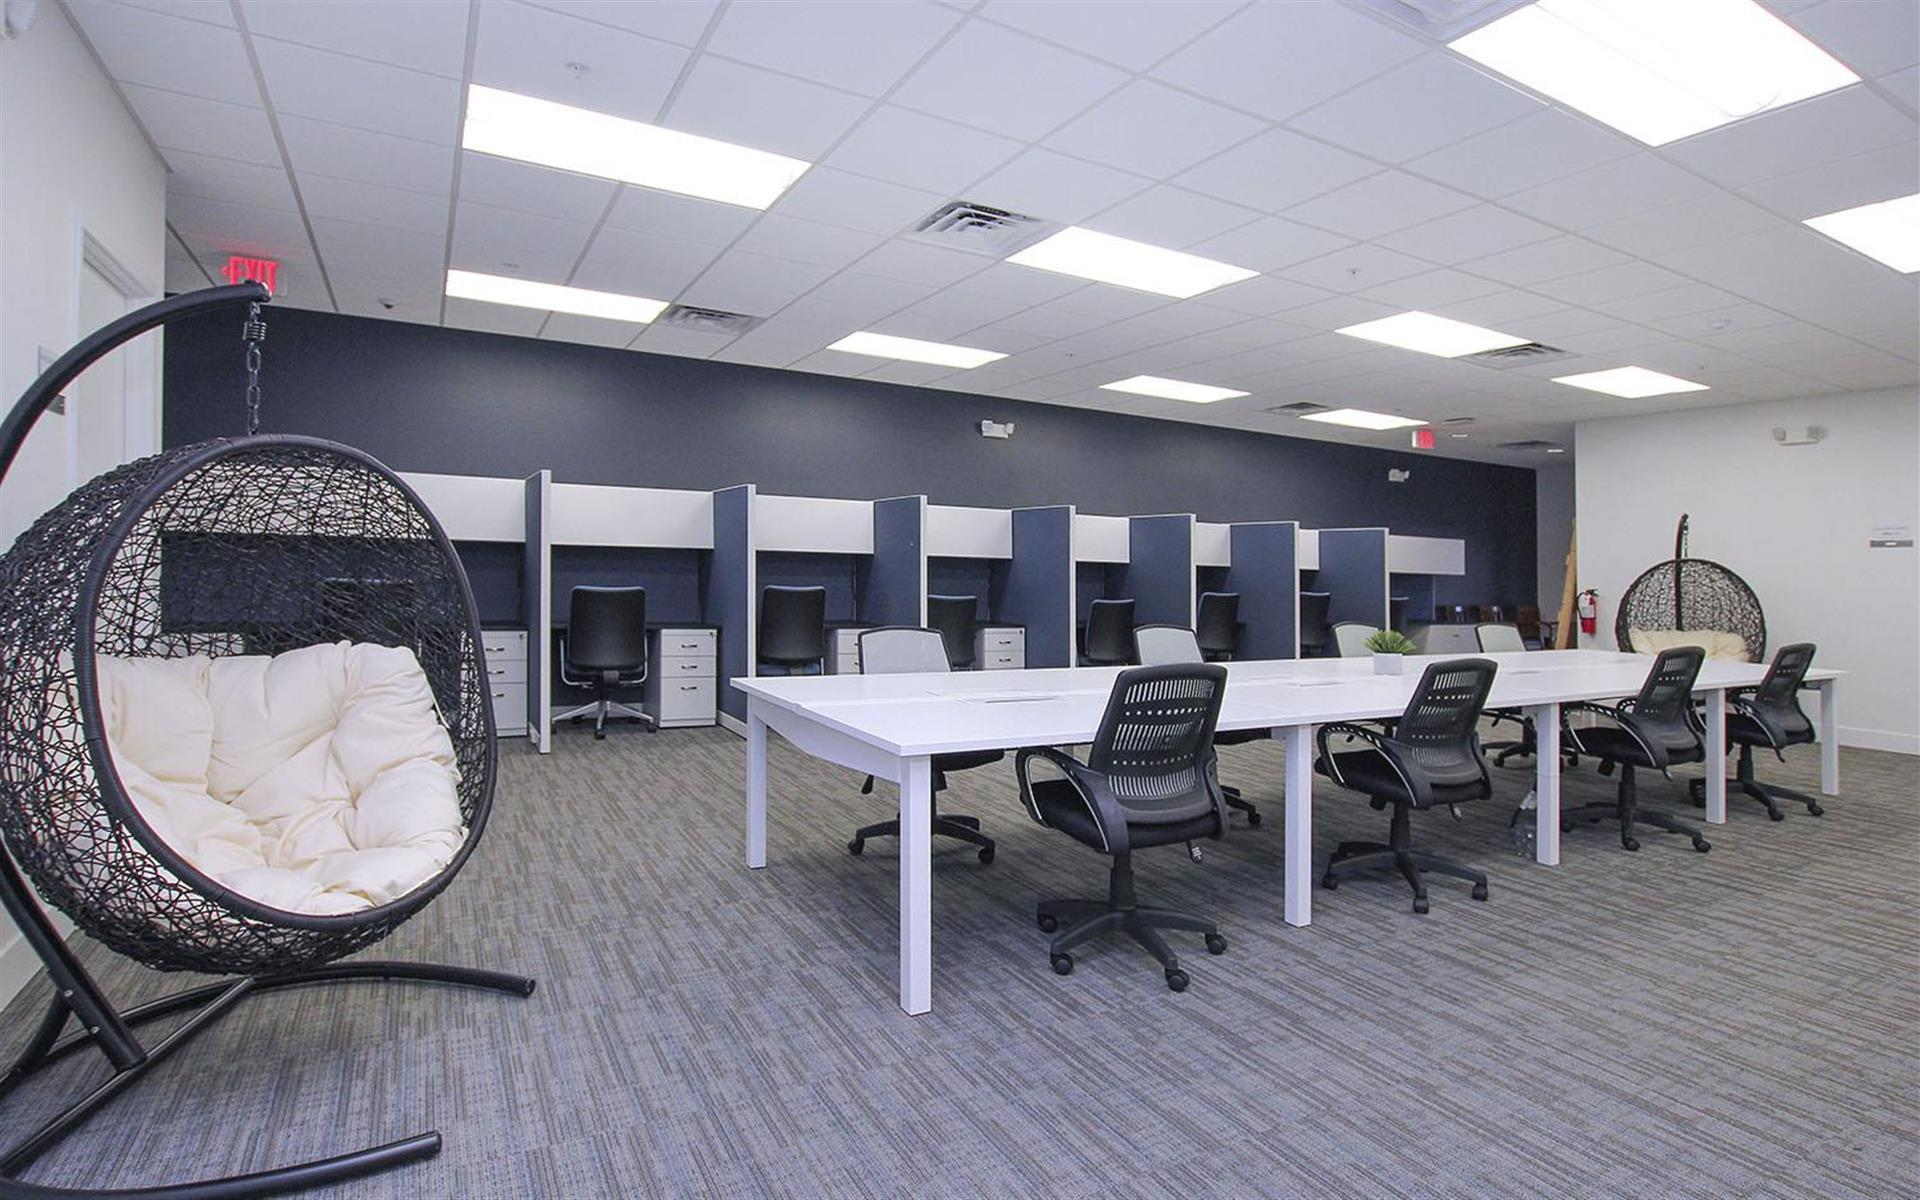 Endeavor Innovative Workspaces - Dedicated Desk